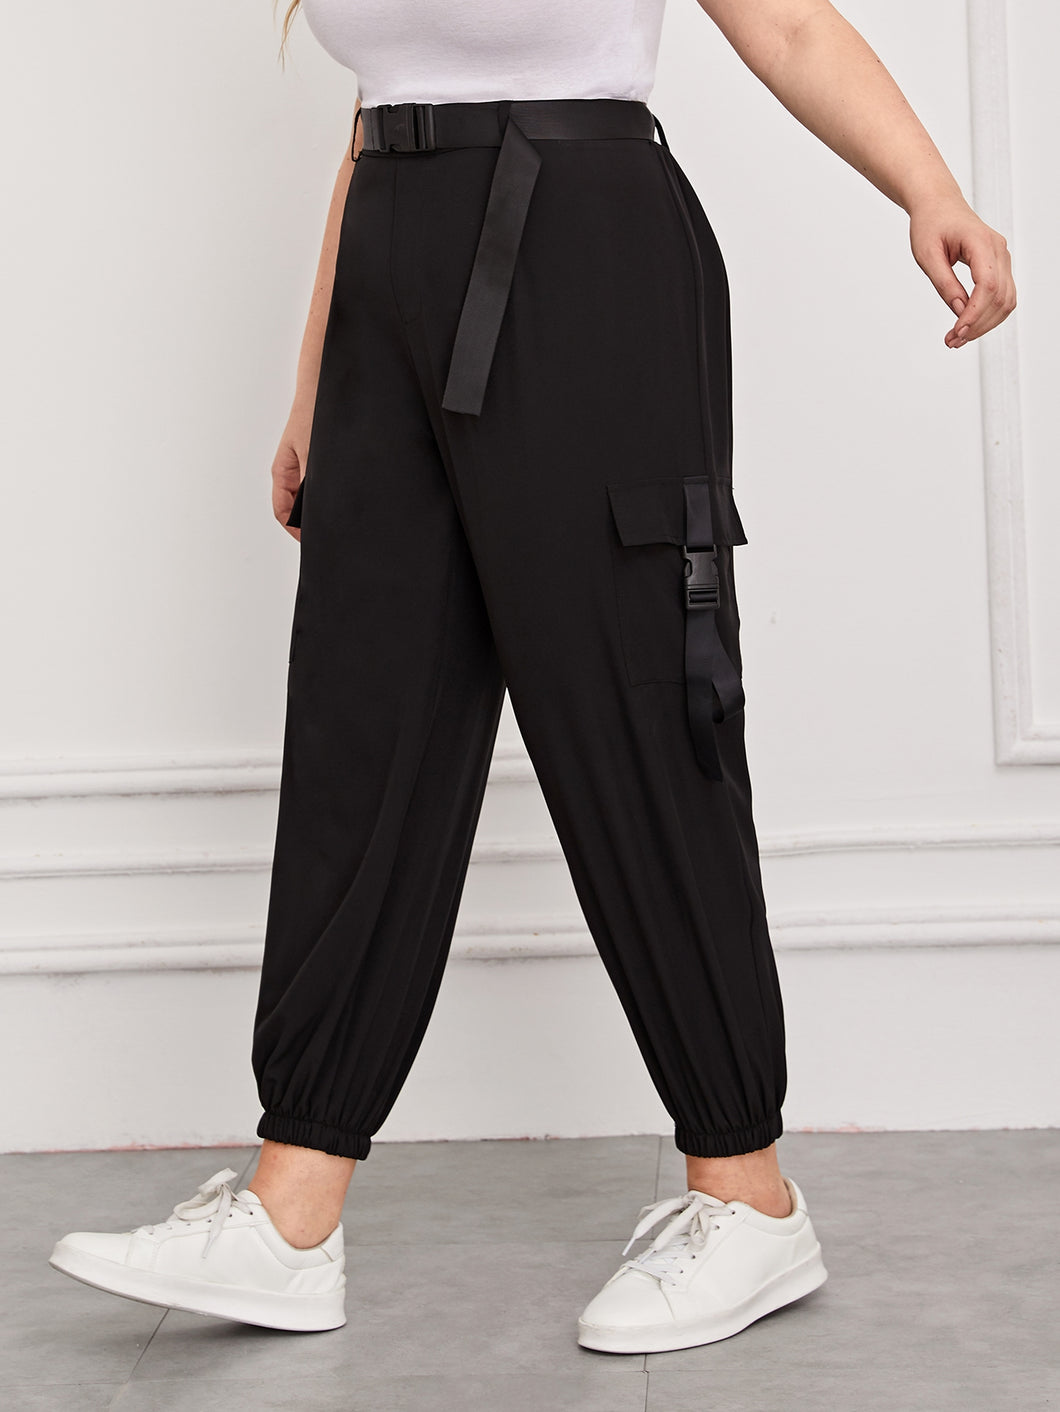 PANTS Plus Buckle Pocket Belted Cargo Pants - EK CHIC